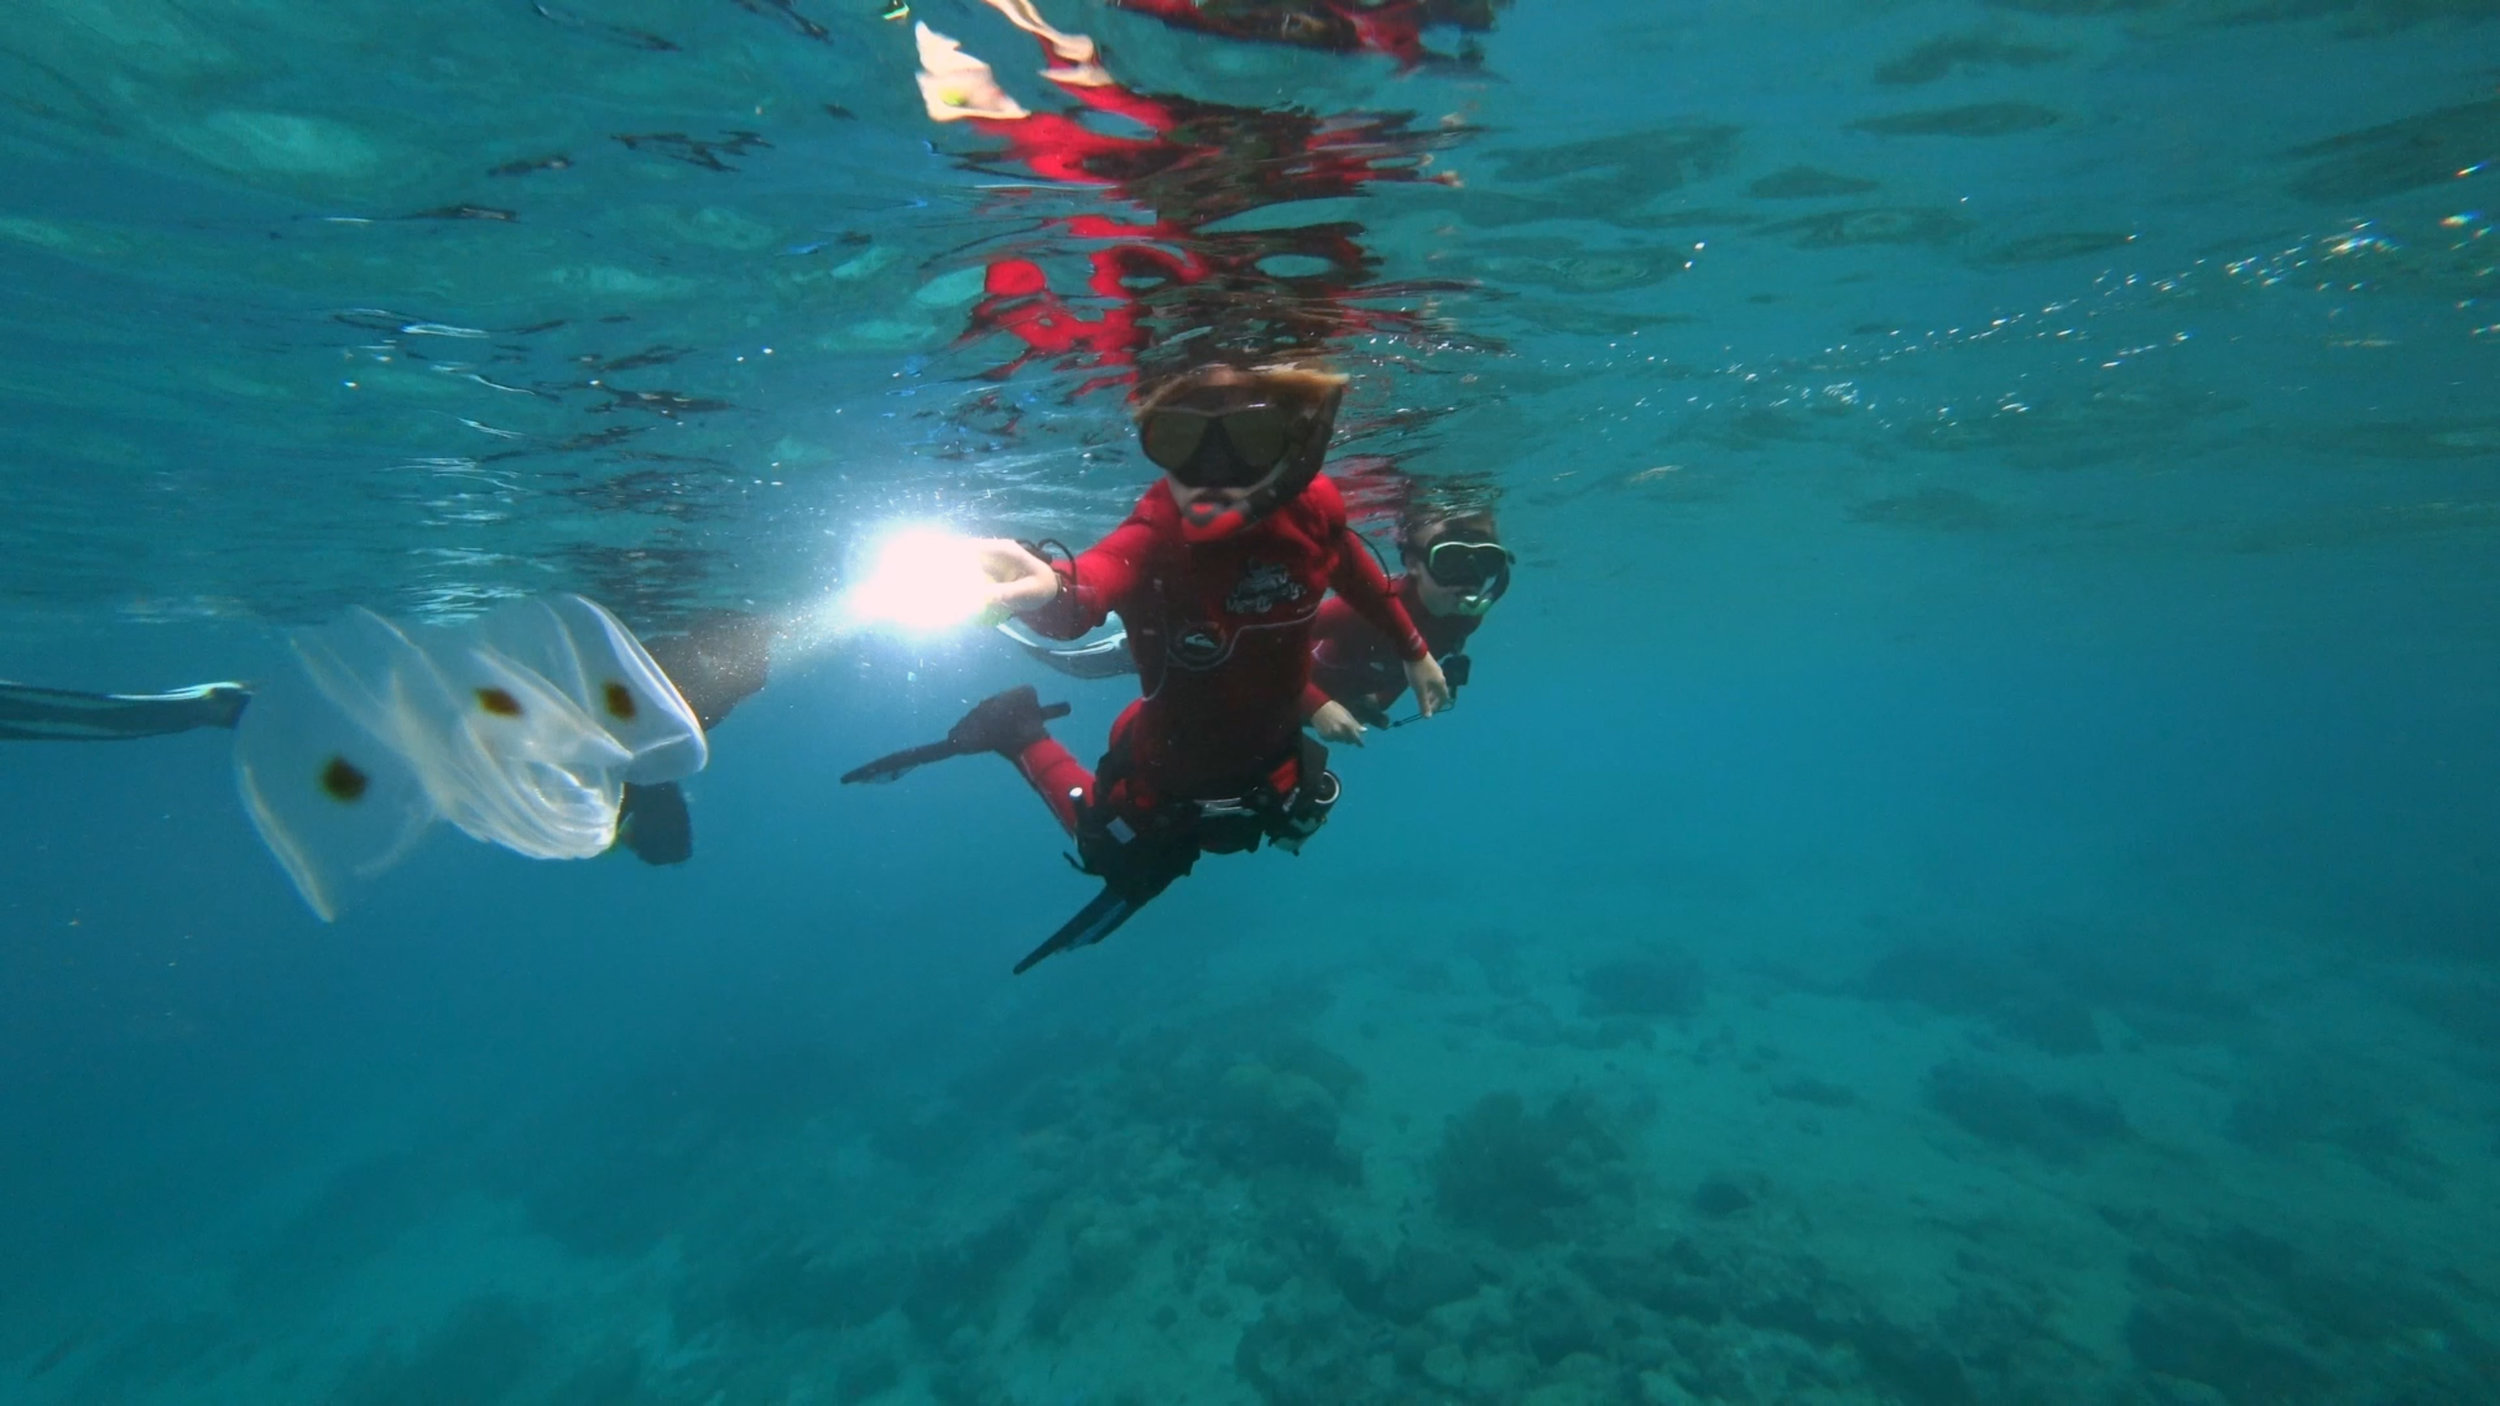 Diving - Connor views comb jelly.jpg